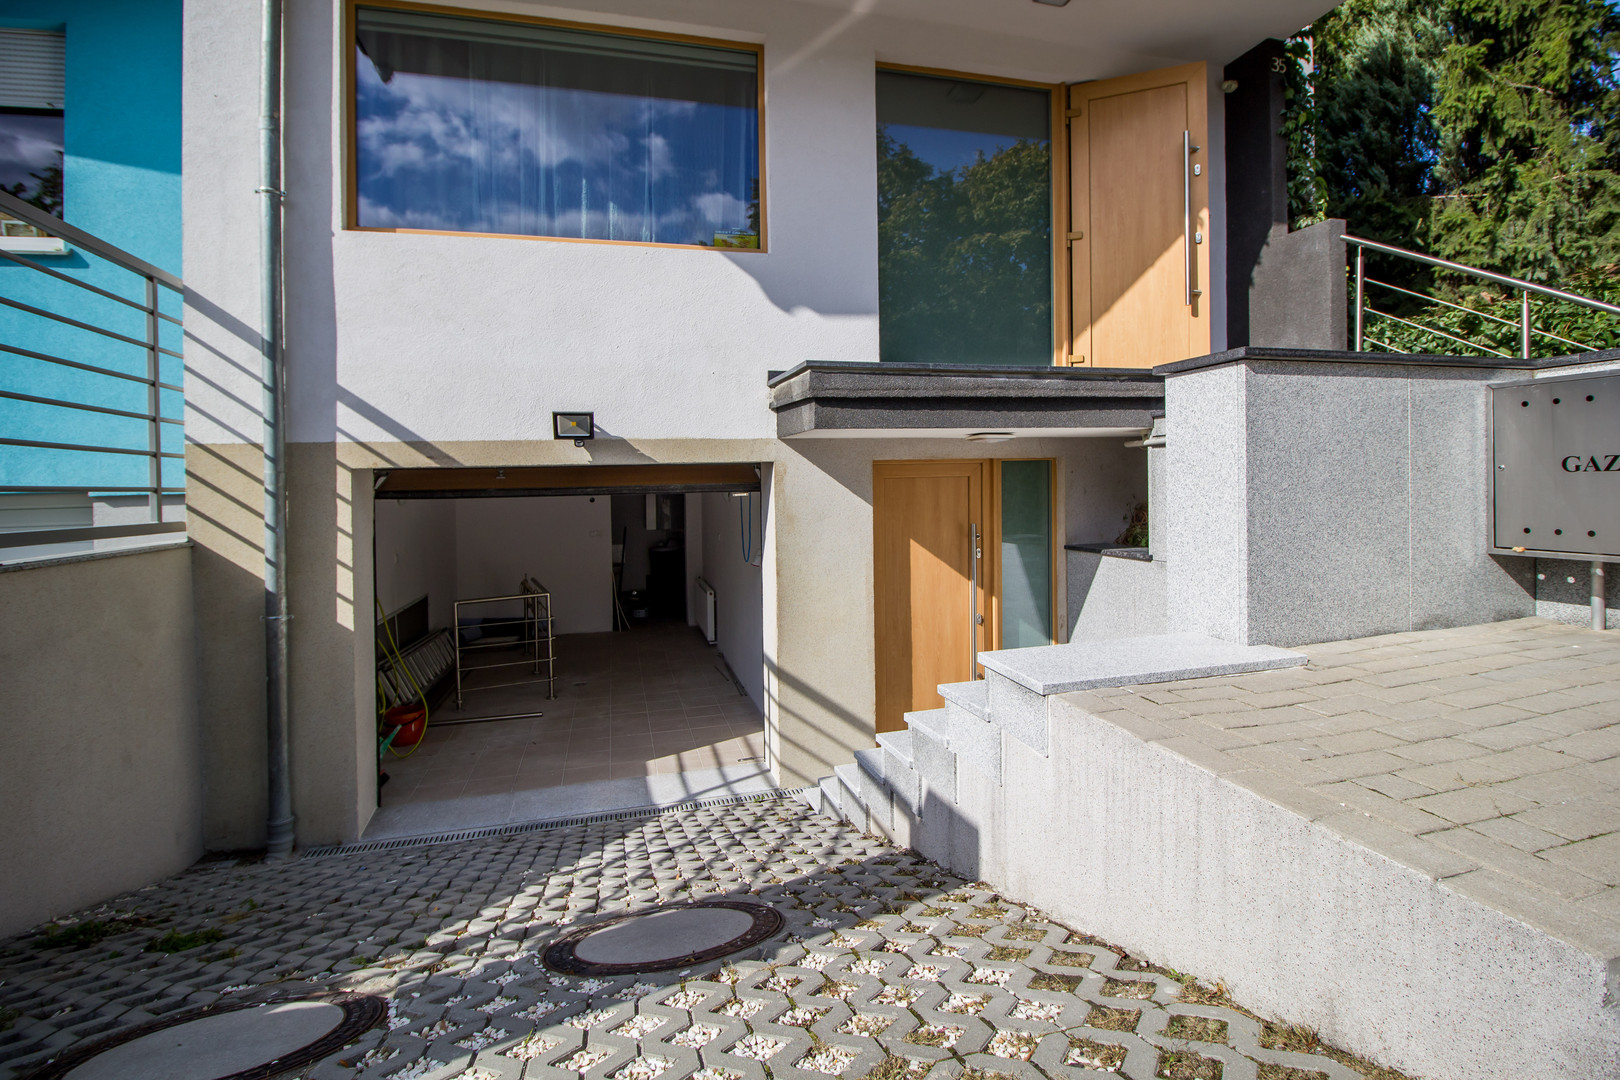 House for rent Poznan Poland (10 of 31).